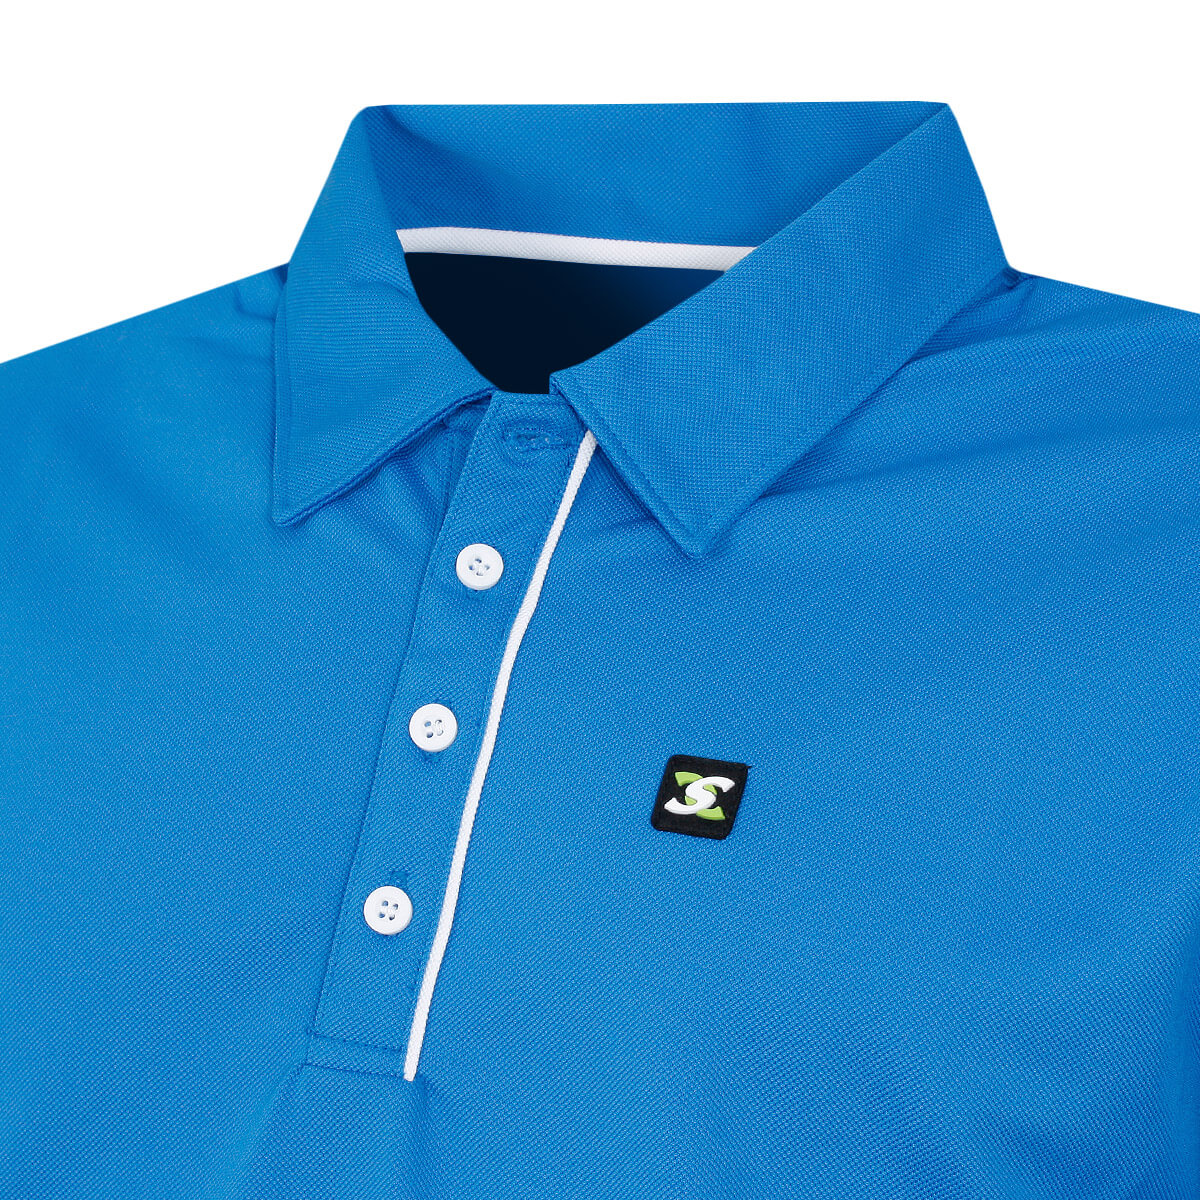 Stuburt-Mens-Urban-Long-Sleeve-Wicking-Breathable-Golf-Polo-Shirt-33-OFF-RRP thumbnail 12